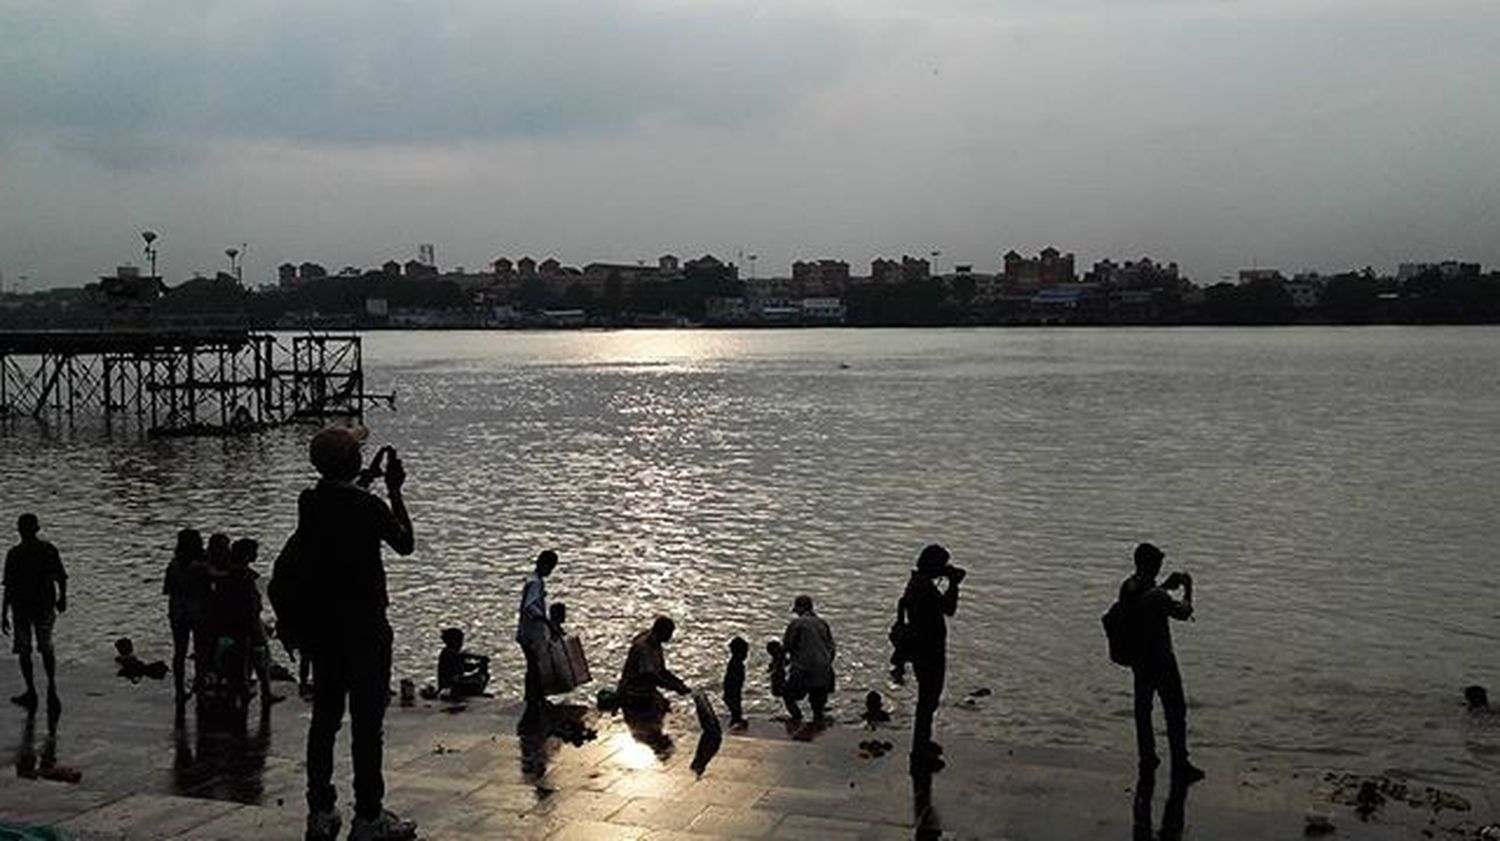 || Clicking India Clicking || . . Silhouette PeopleinSilhouette Sunset Kolkata Calcutta Calcuttakiss CalcuttaBliss Camera Click_india_click Sunkissed Sunsetsky Reflection Glitering Water People HumansofCalcutta Ghat Sokolkata GhatsofKolkata Ig_calcutta Calphotos _soi _cic _ccal _adi oye